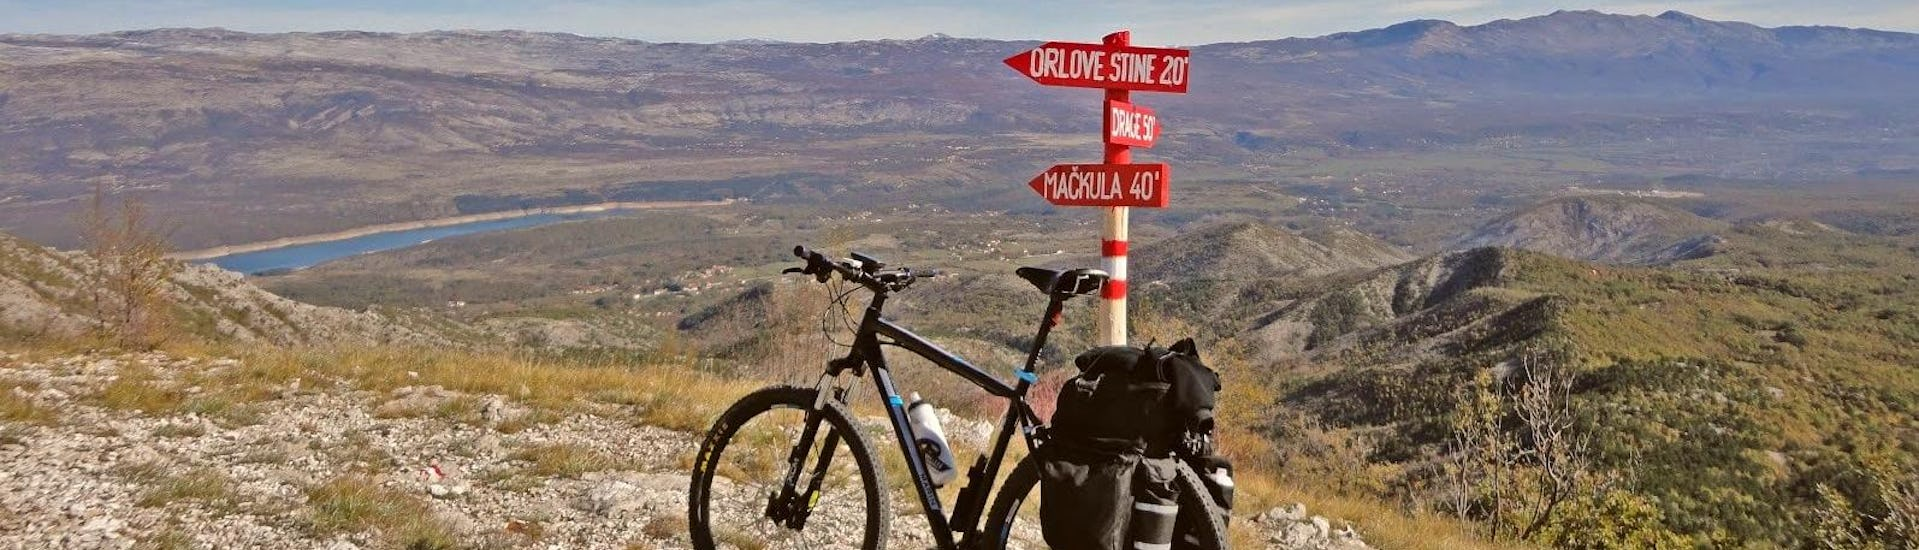 A cyclist left a bike on a fork and went to a viewing point during the Extreme Svilaja Mountain Bike Tour incl. Transfer from Split organised by Hotel Alkar.